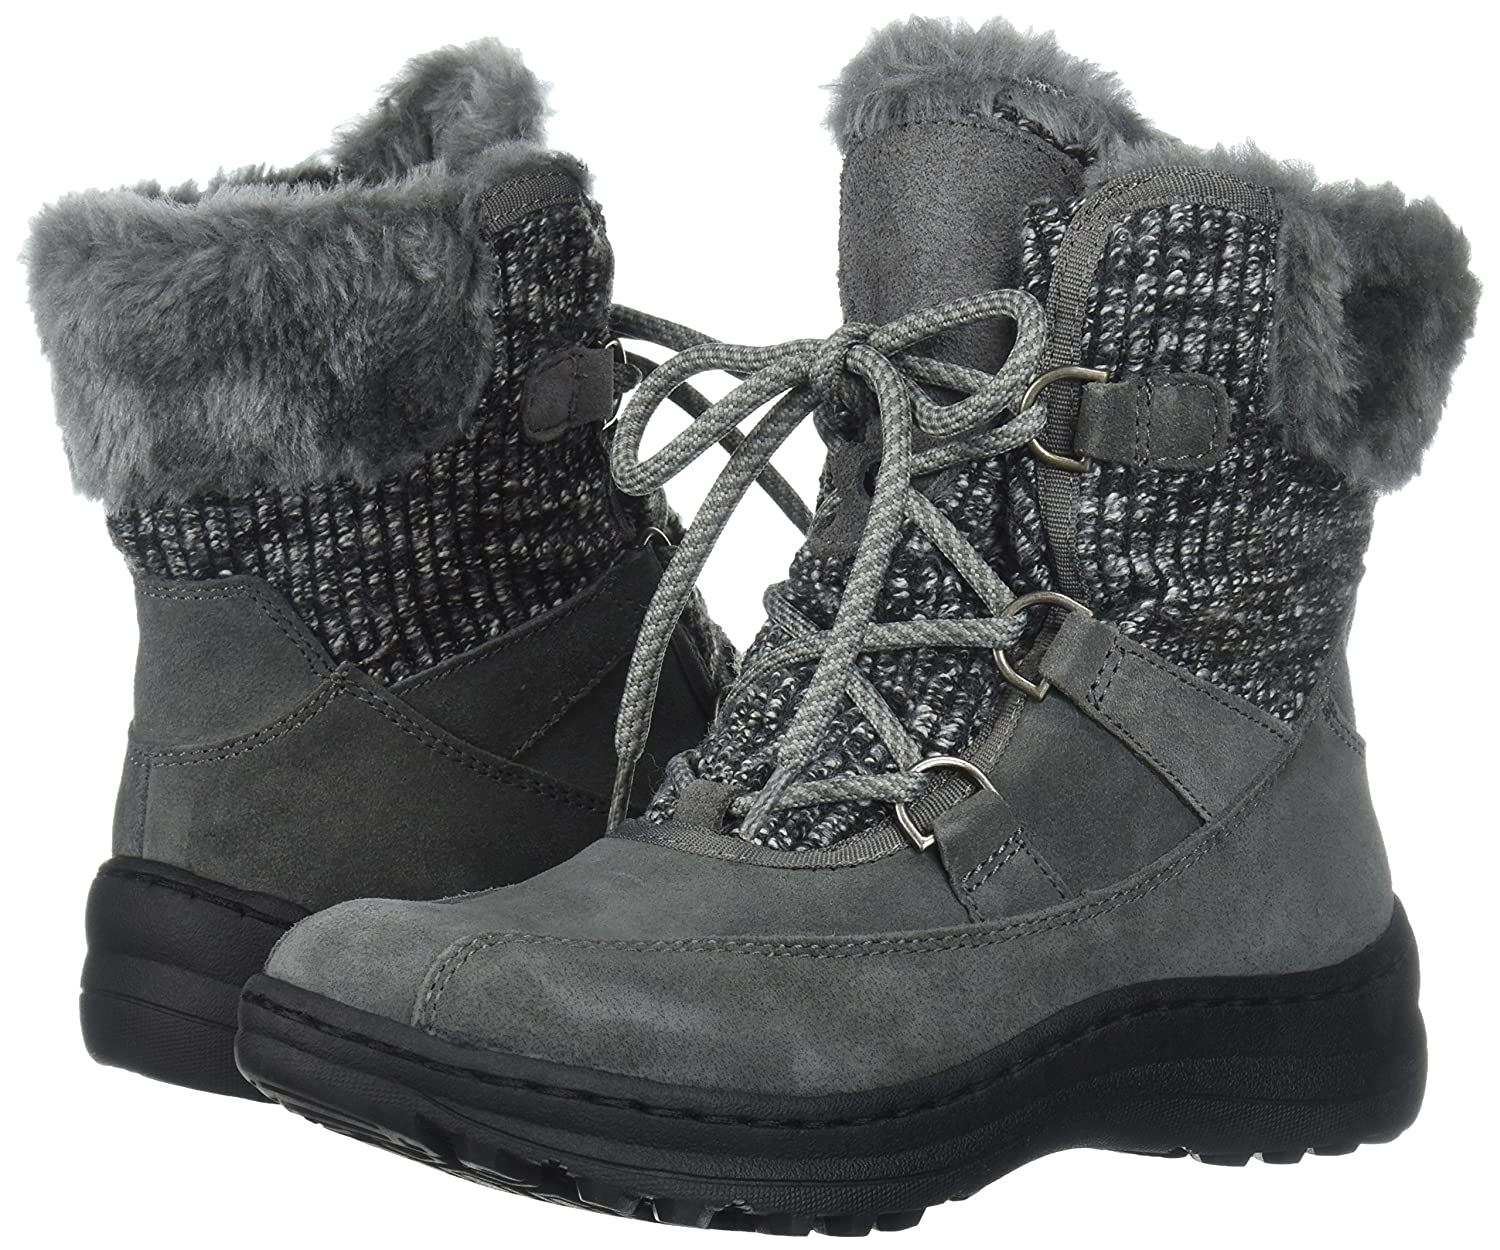 BareTraps Women's Aero Snow Boot, Black, 7.5 M US Grey B071F87MXK 6 B(M) US|Dark Grey US ad5e8c